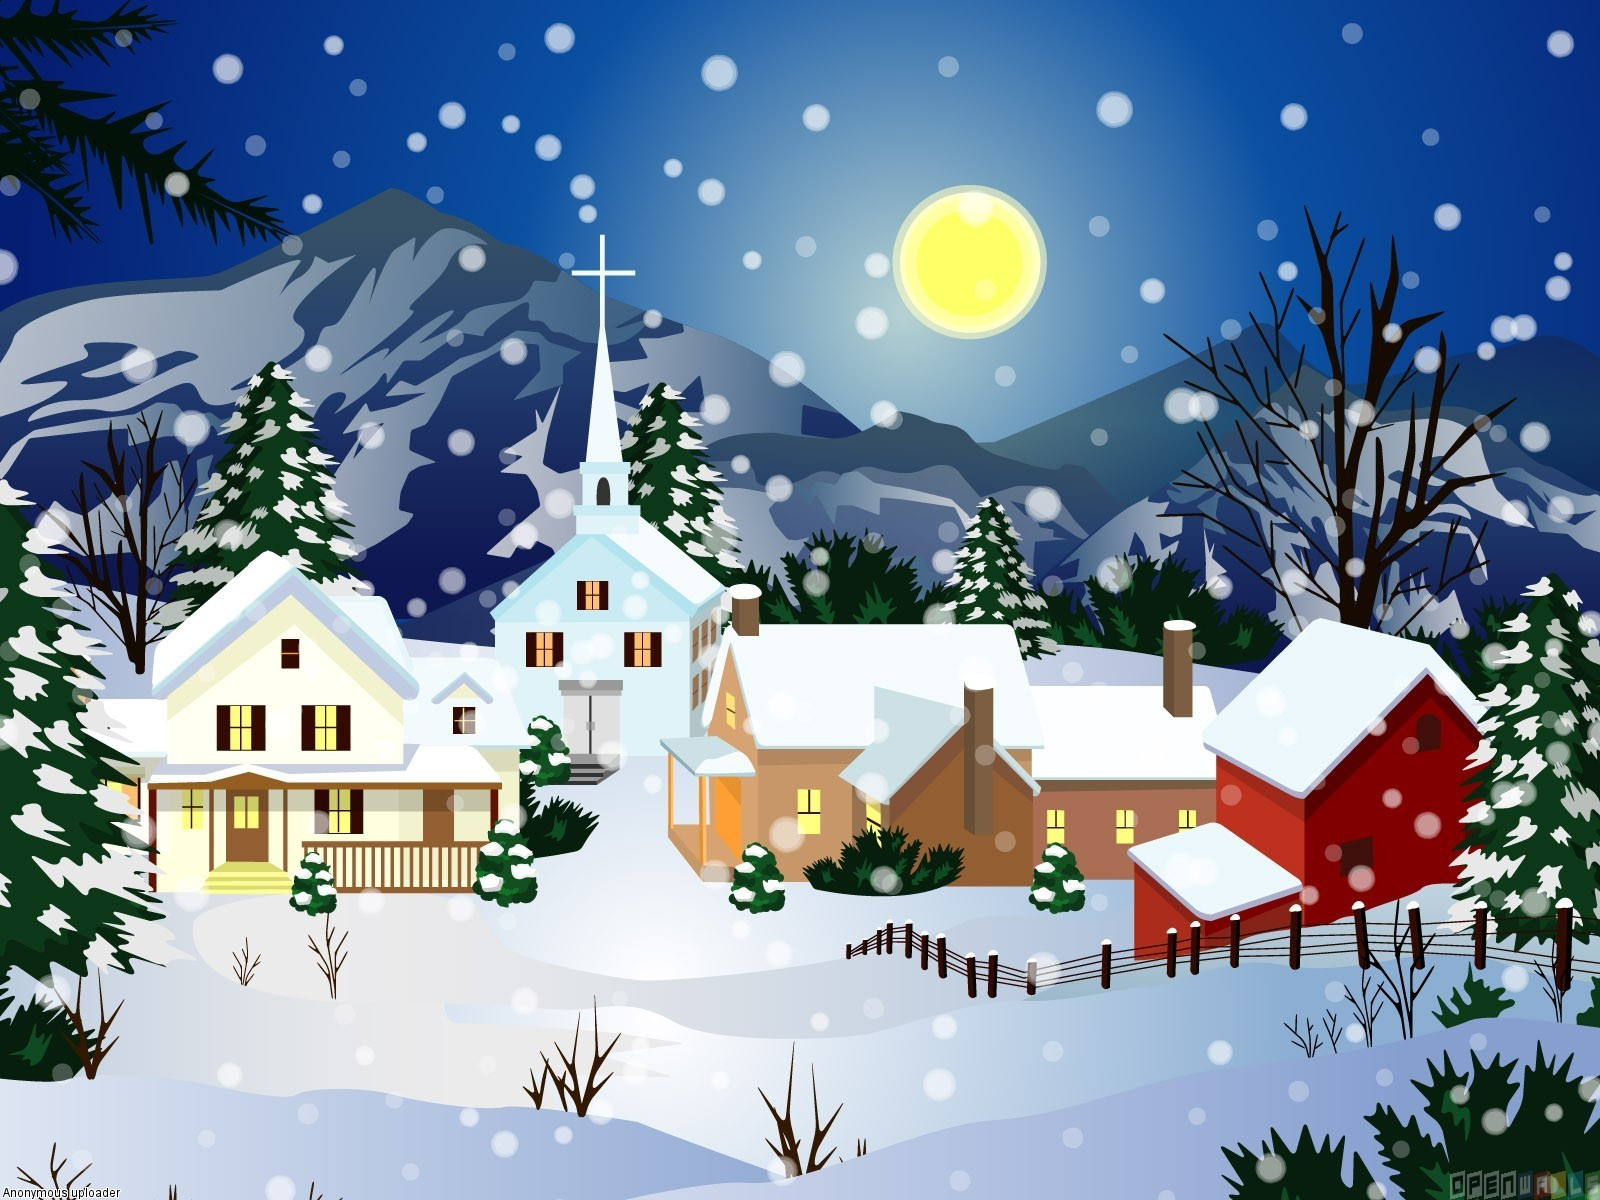 Joy To The World – Christmas Carol Music and lyrics | Midnight Visitor